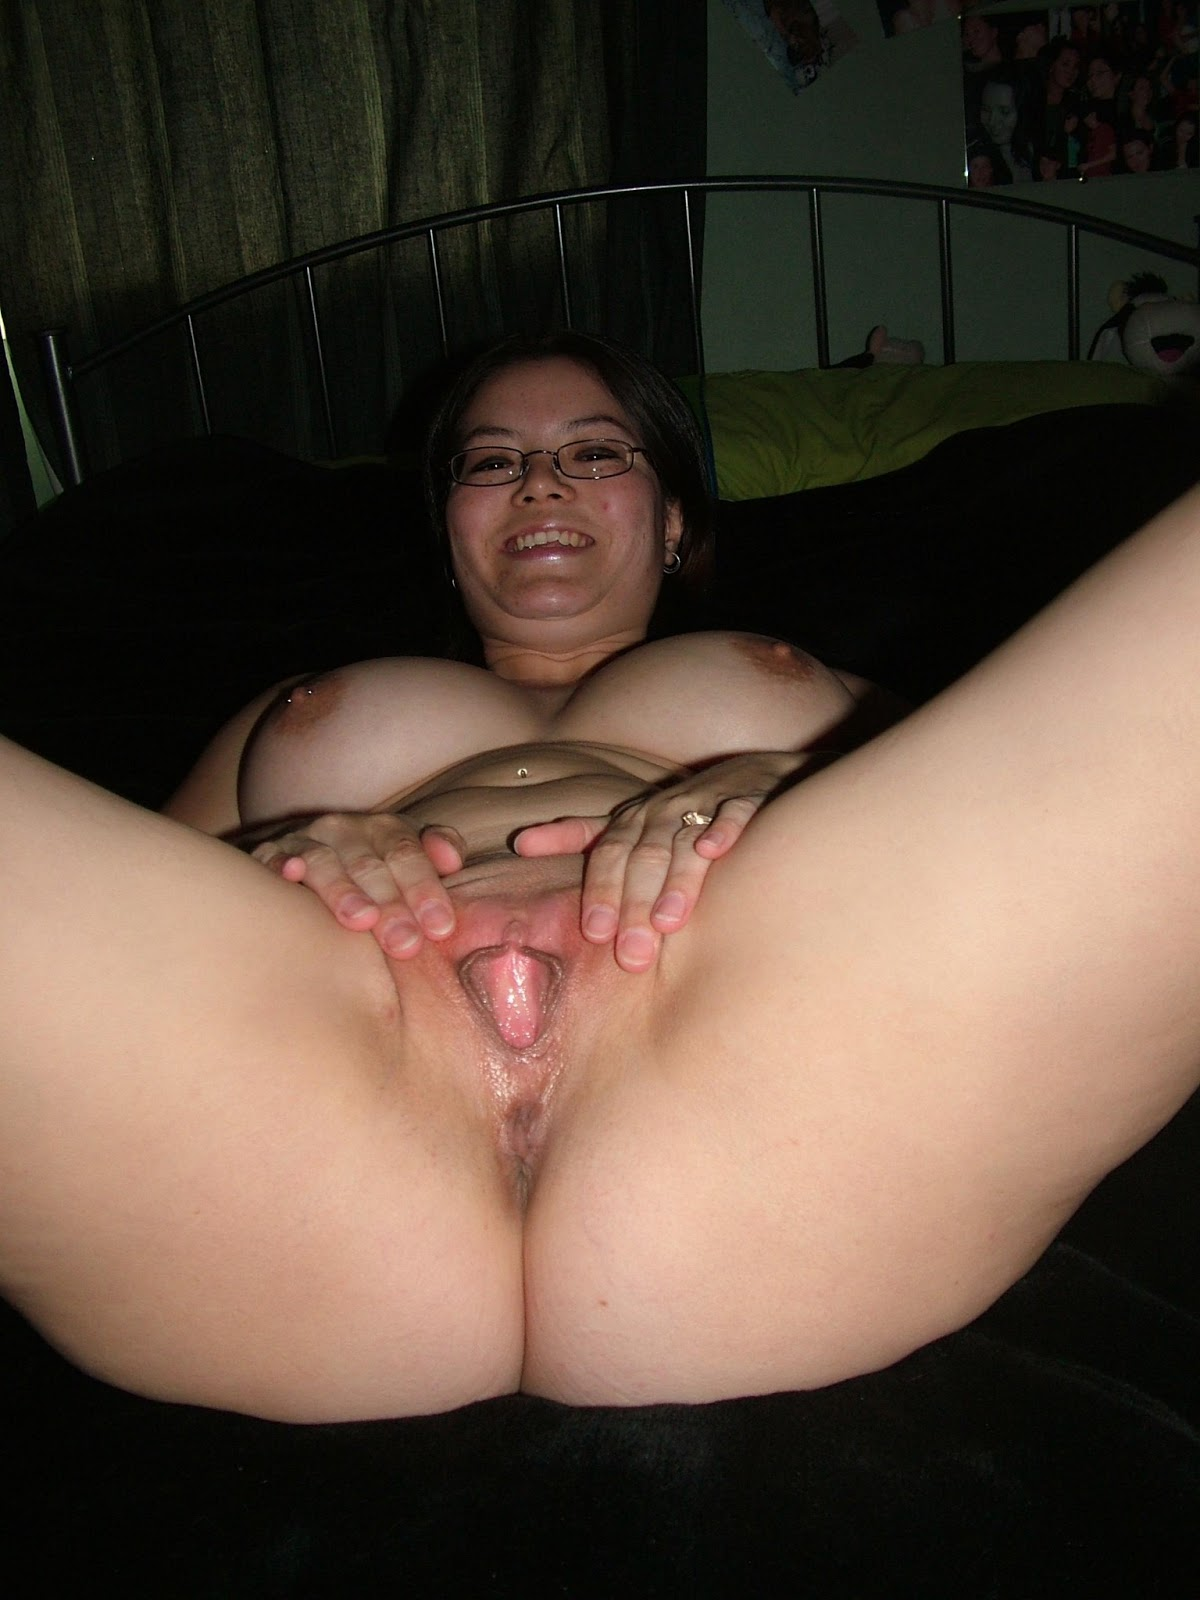 Nasty multiple creampies double penetration gangbangs